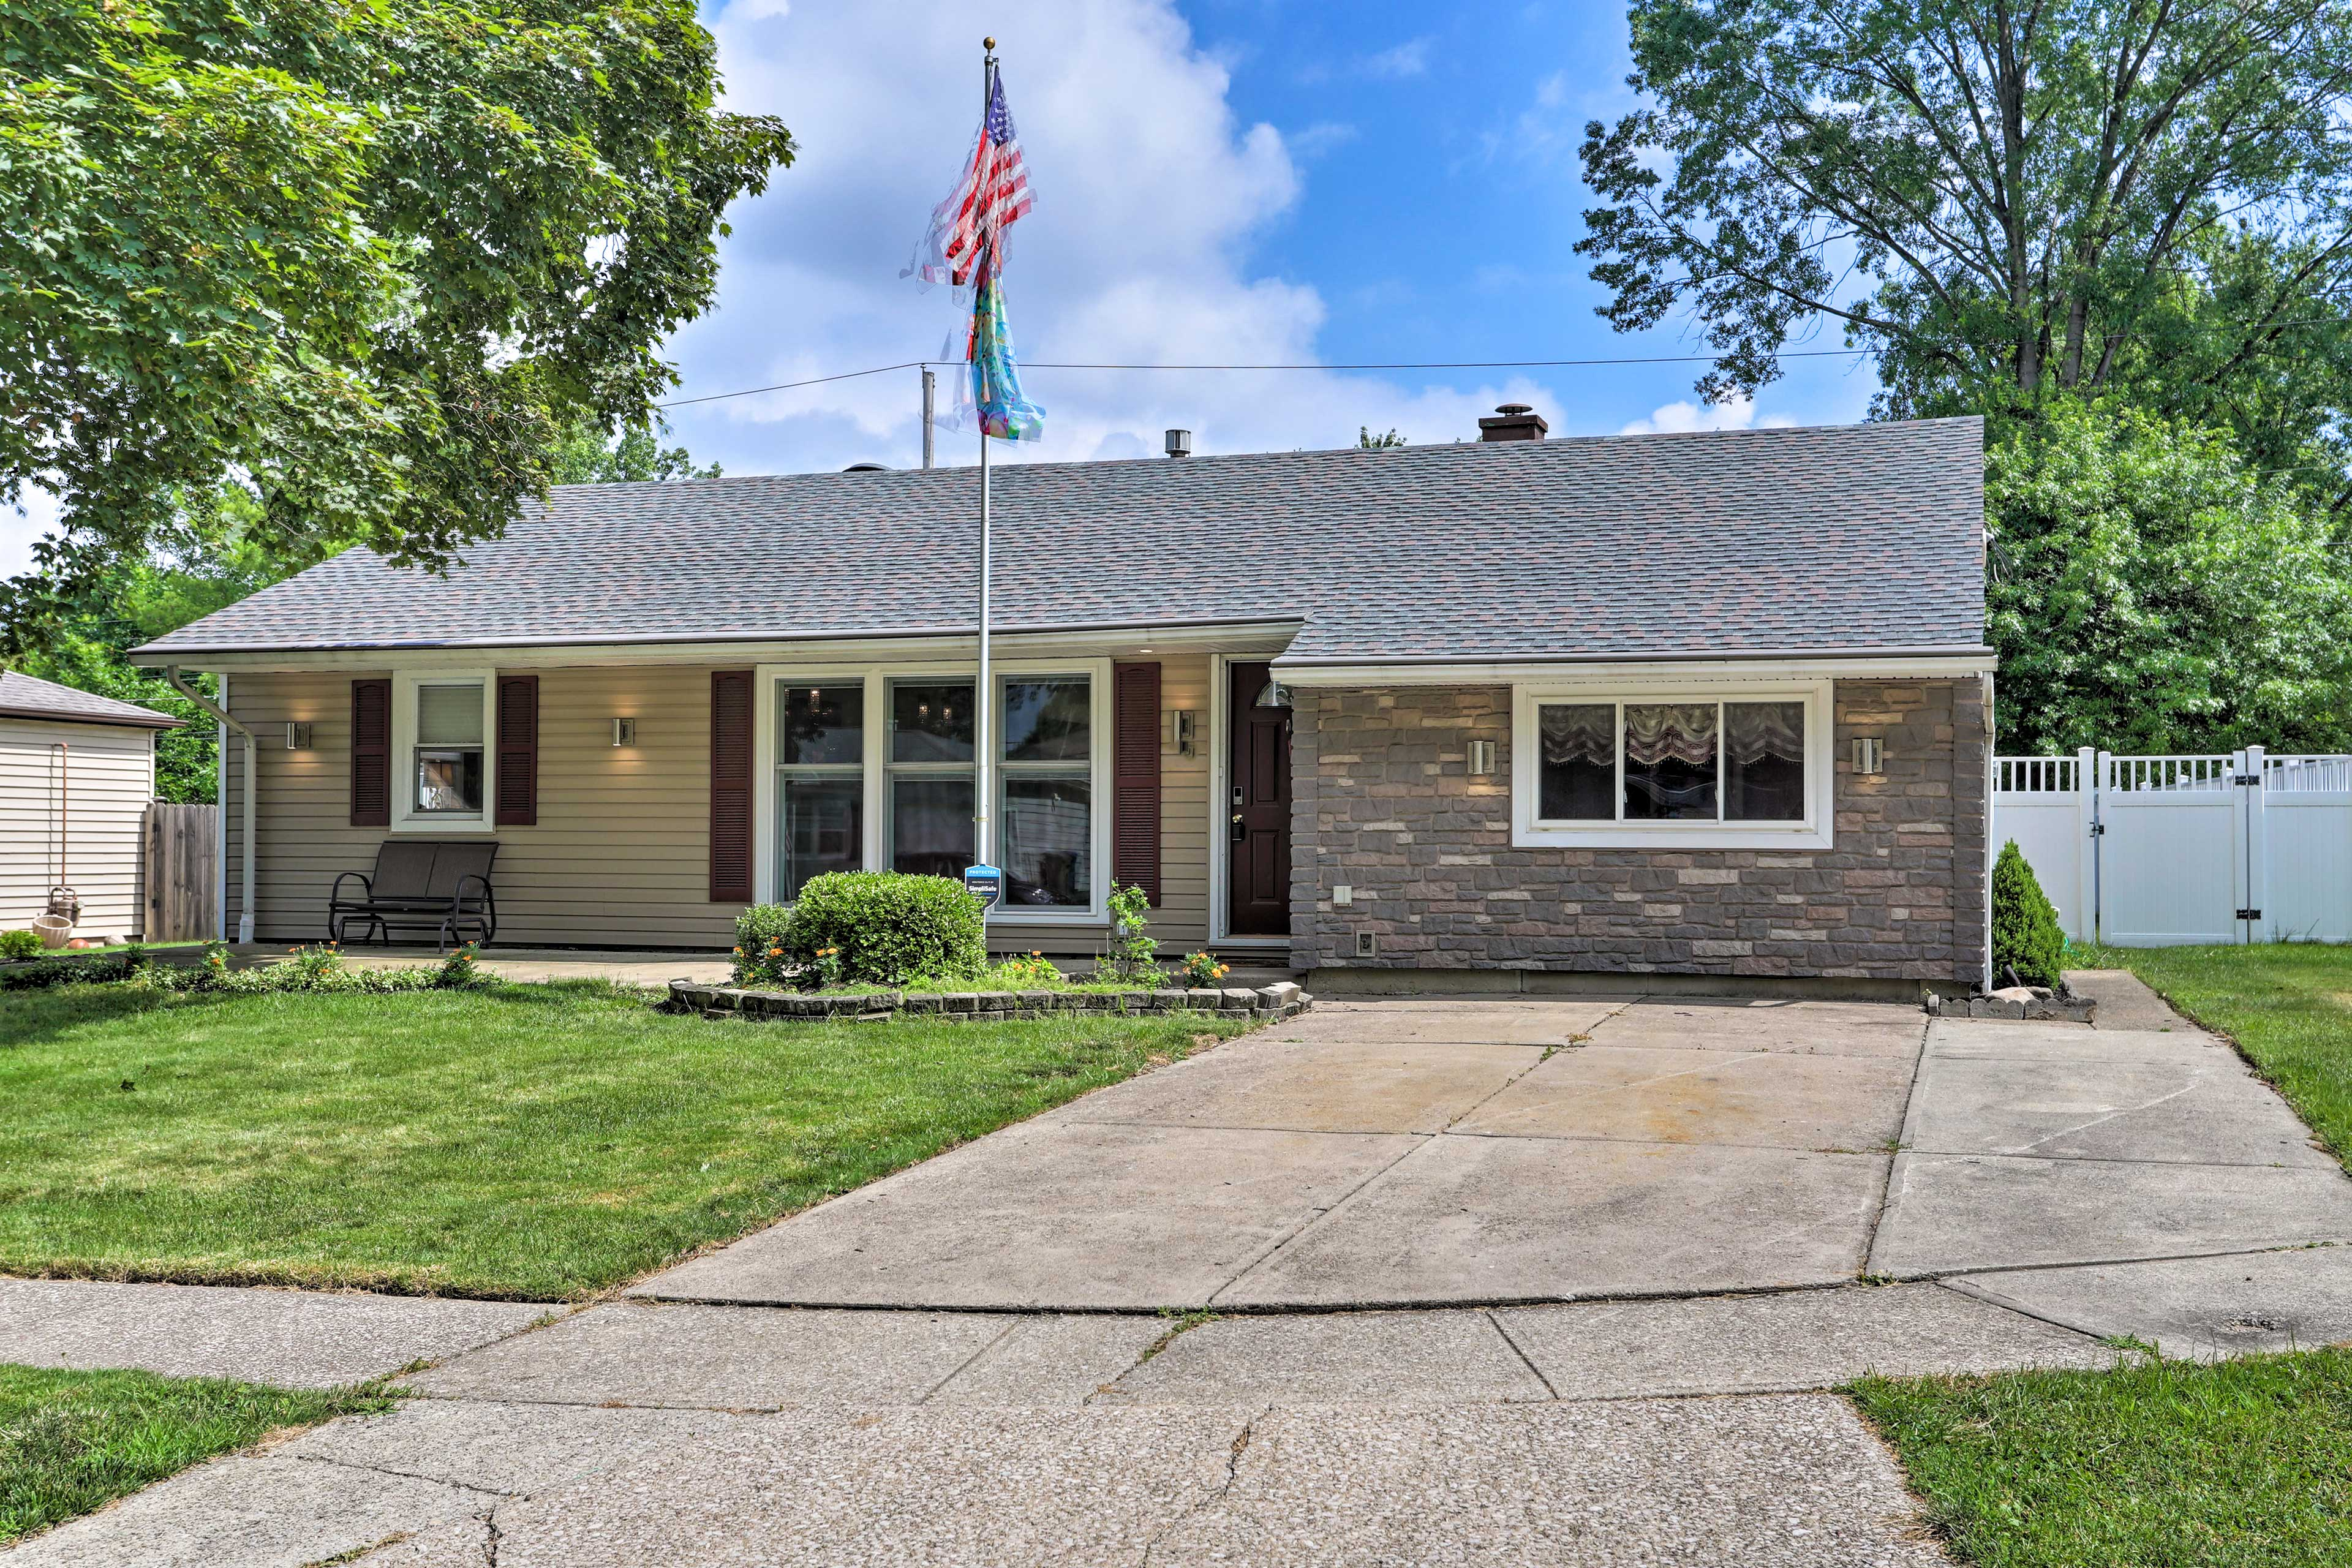 The cozy home is situated on a quiet, tree-lined street.